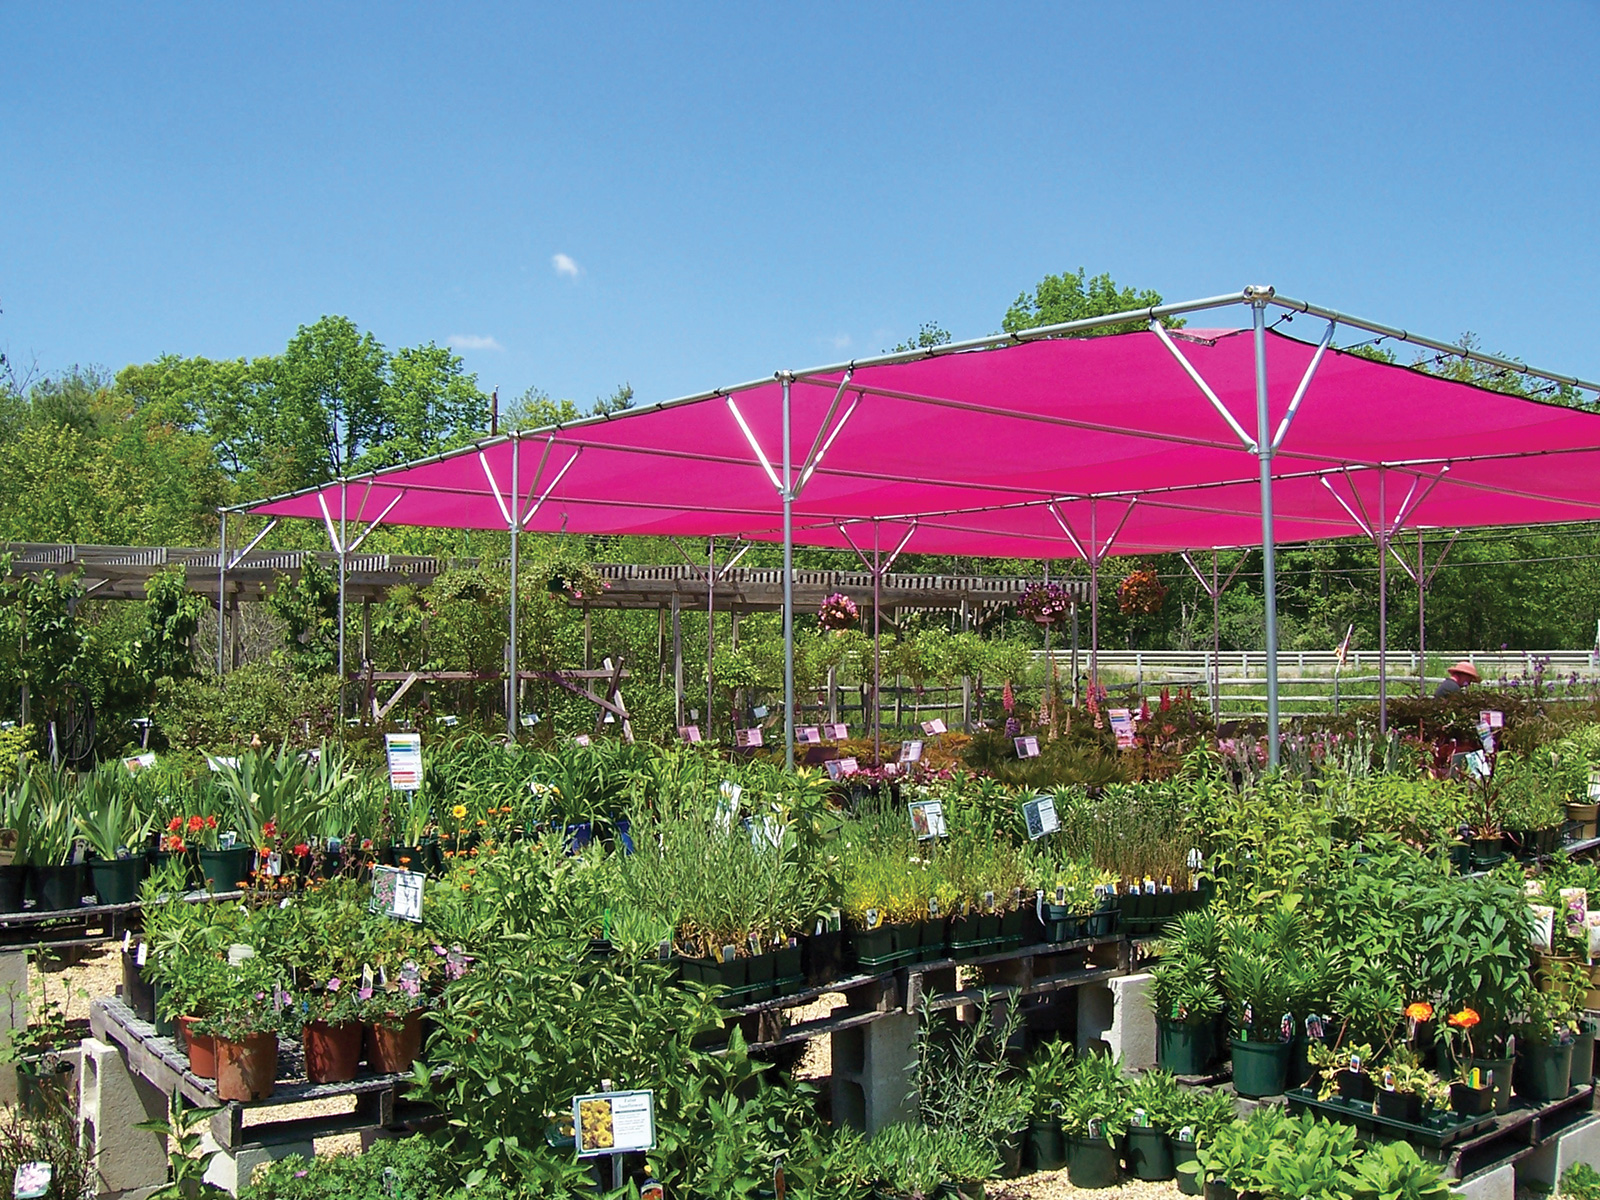 rimol shade structure in a garden center